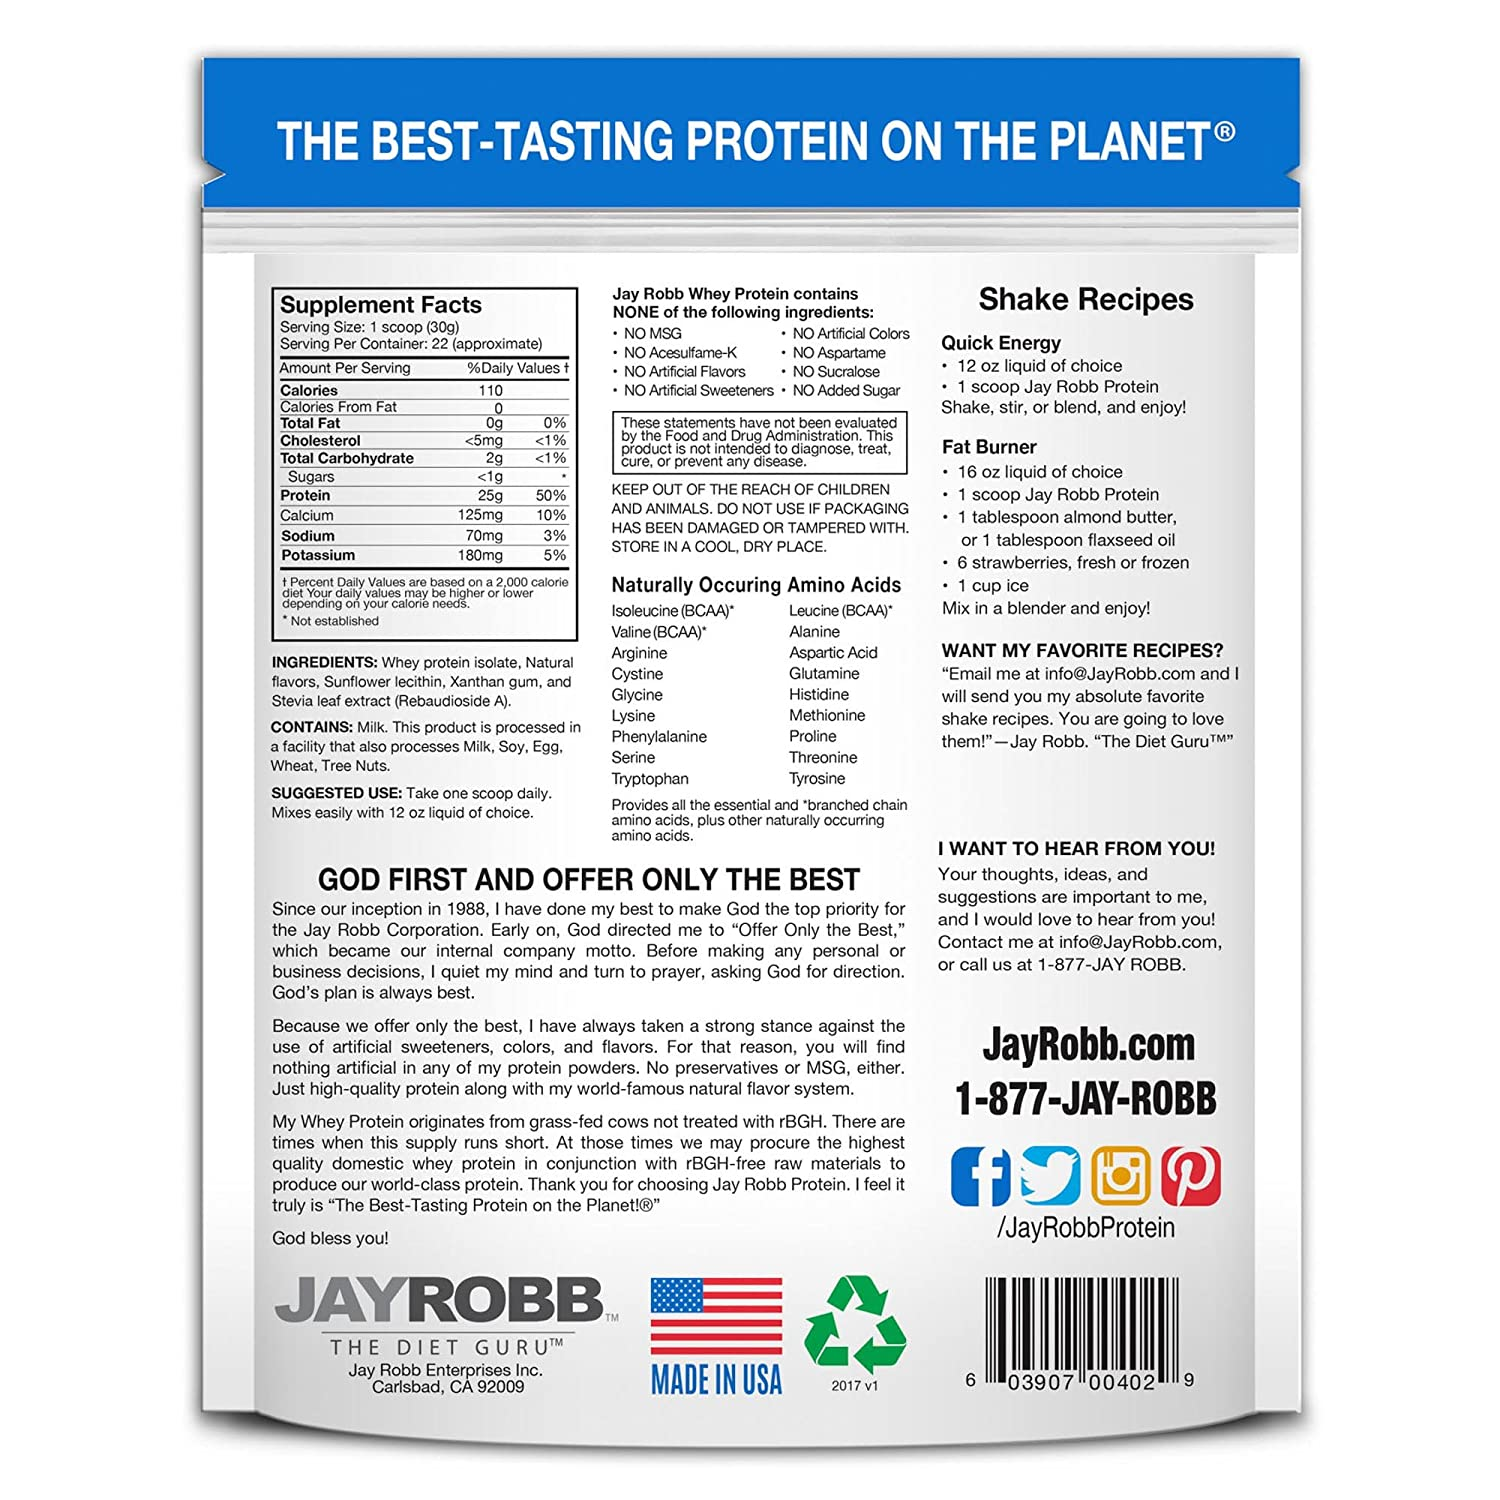 Amazon.com: Jay Robb - Grass-Fed Whey Protein Isolate Powder, Outrageously Delicious, Vanilla, 23 Servings (24 oz): Health & Personal Care